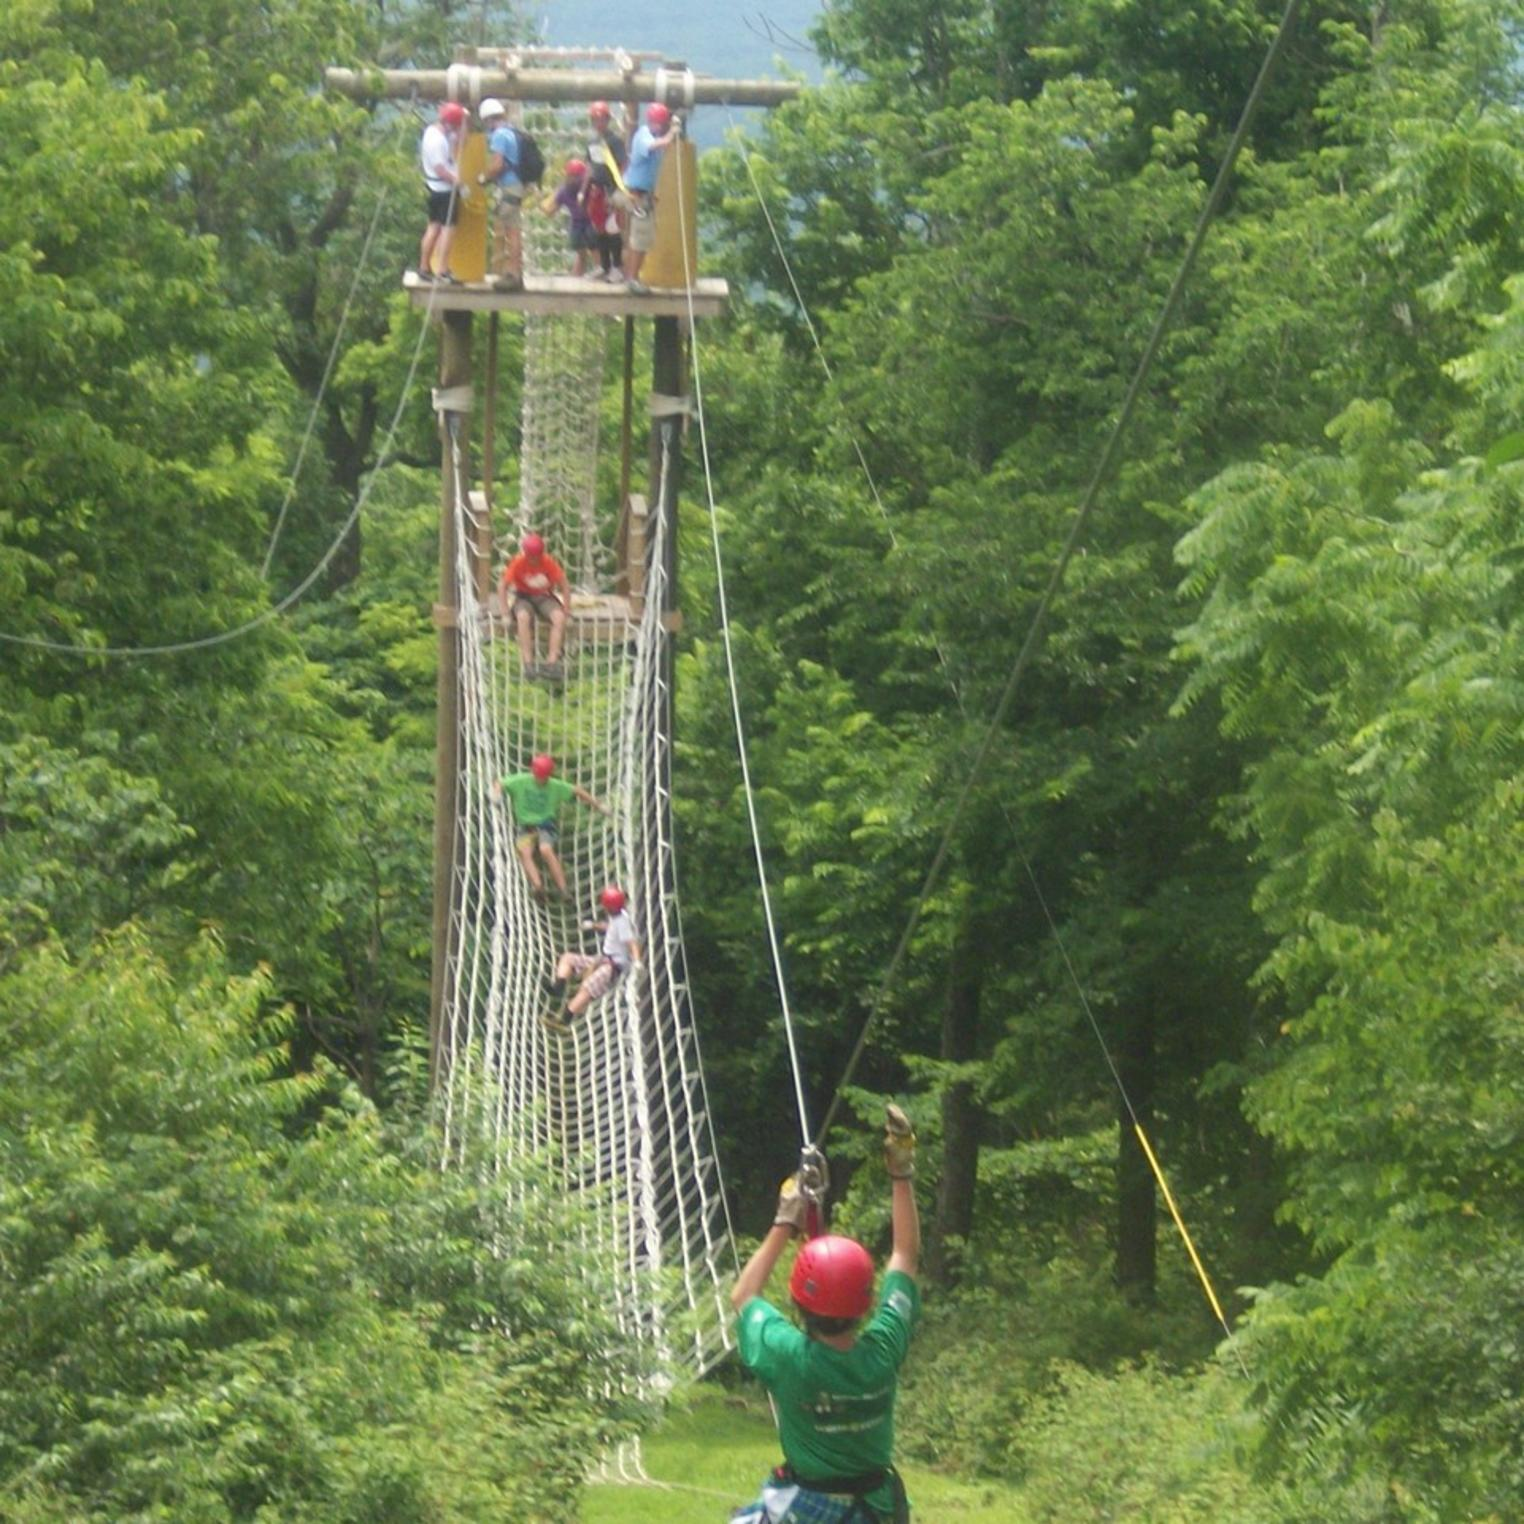 Vertical Trek Zip Line Canopy Tour in Central PA at Roundtop Mountain Resort